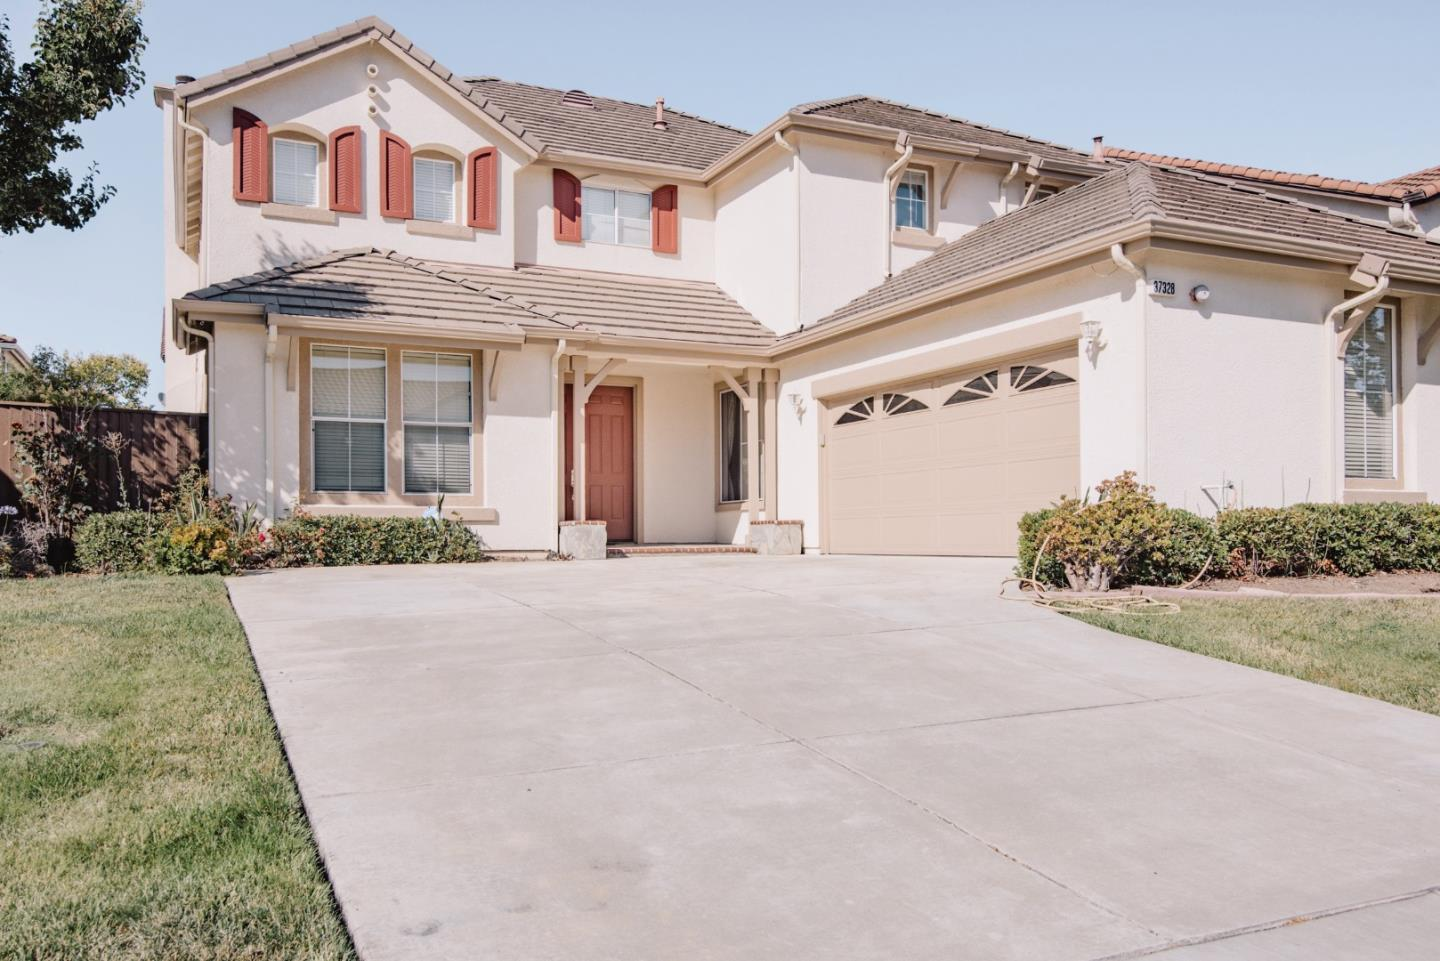 Single Family Home for Sale at 37328 Wedgewood Street 37328 Wedgewood Street Newark, California 94560 United States